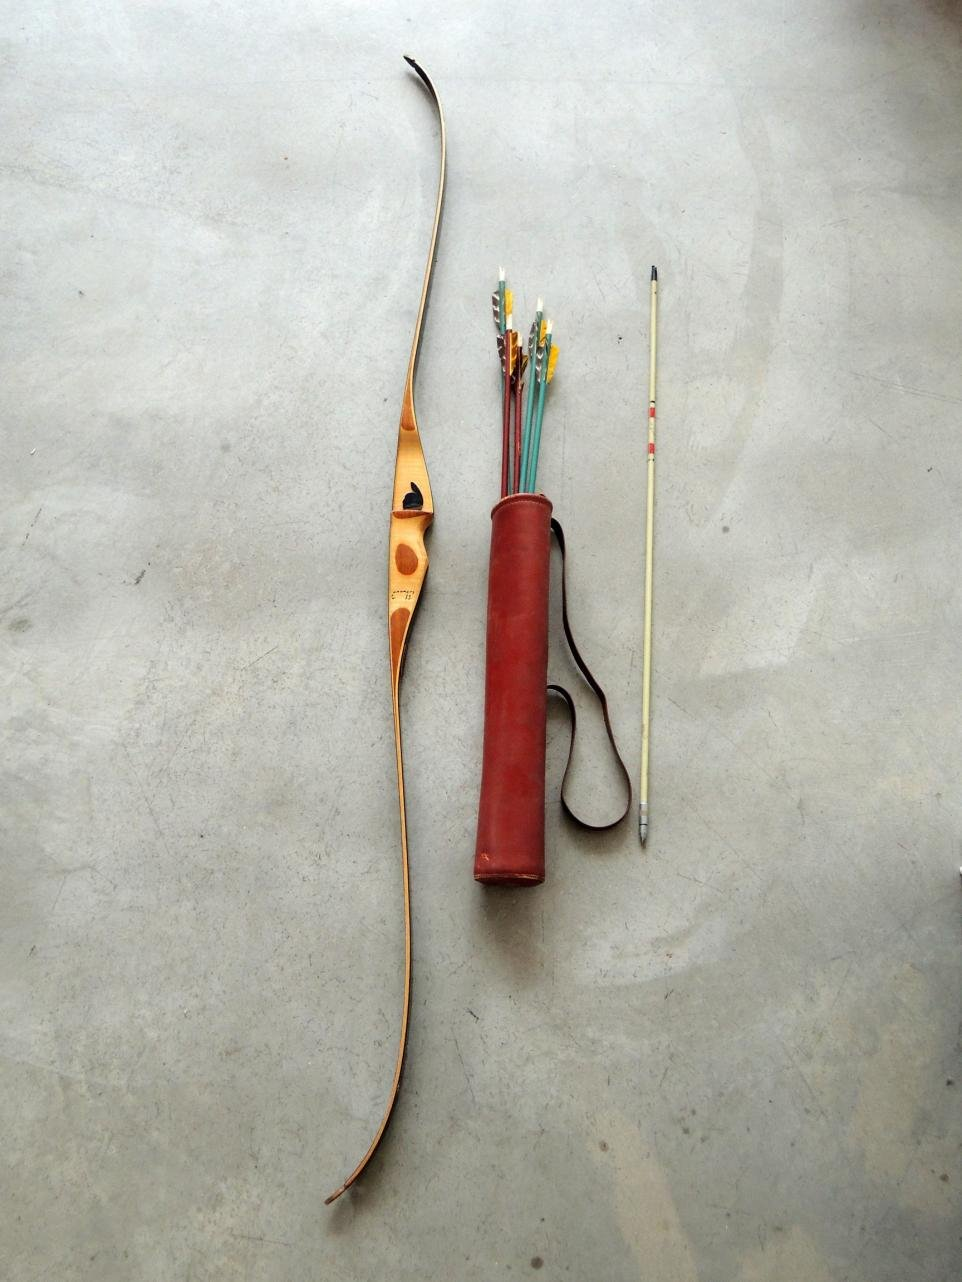 Need help appraising an Indian Archery recurve bow + arrows